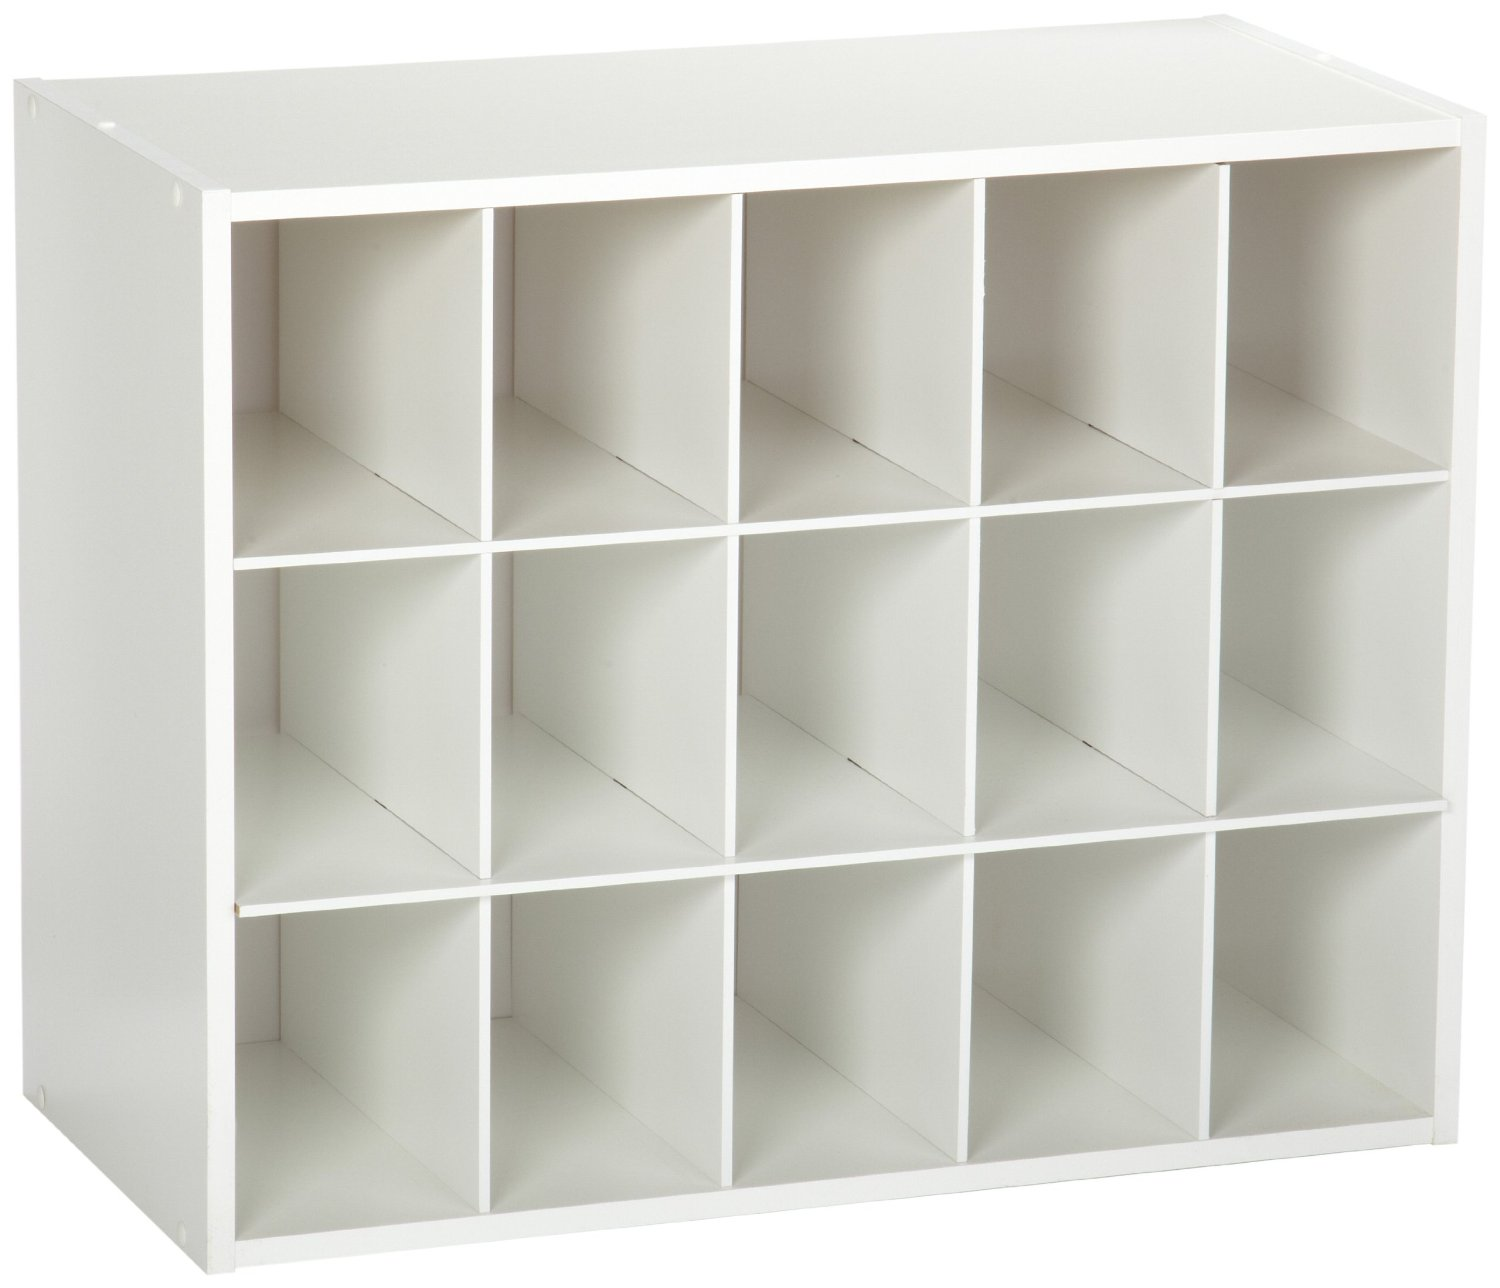 ... closet to create an efficient and easily viewable storage solution